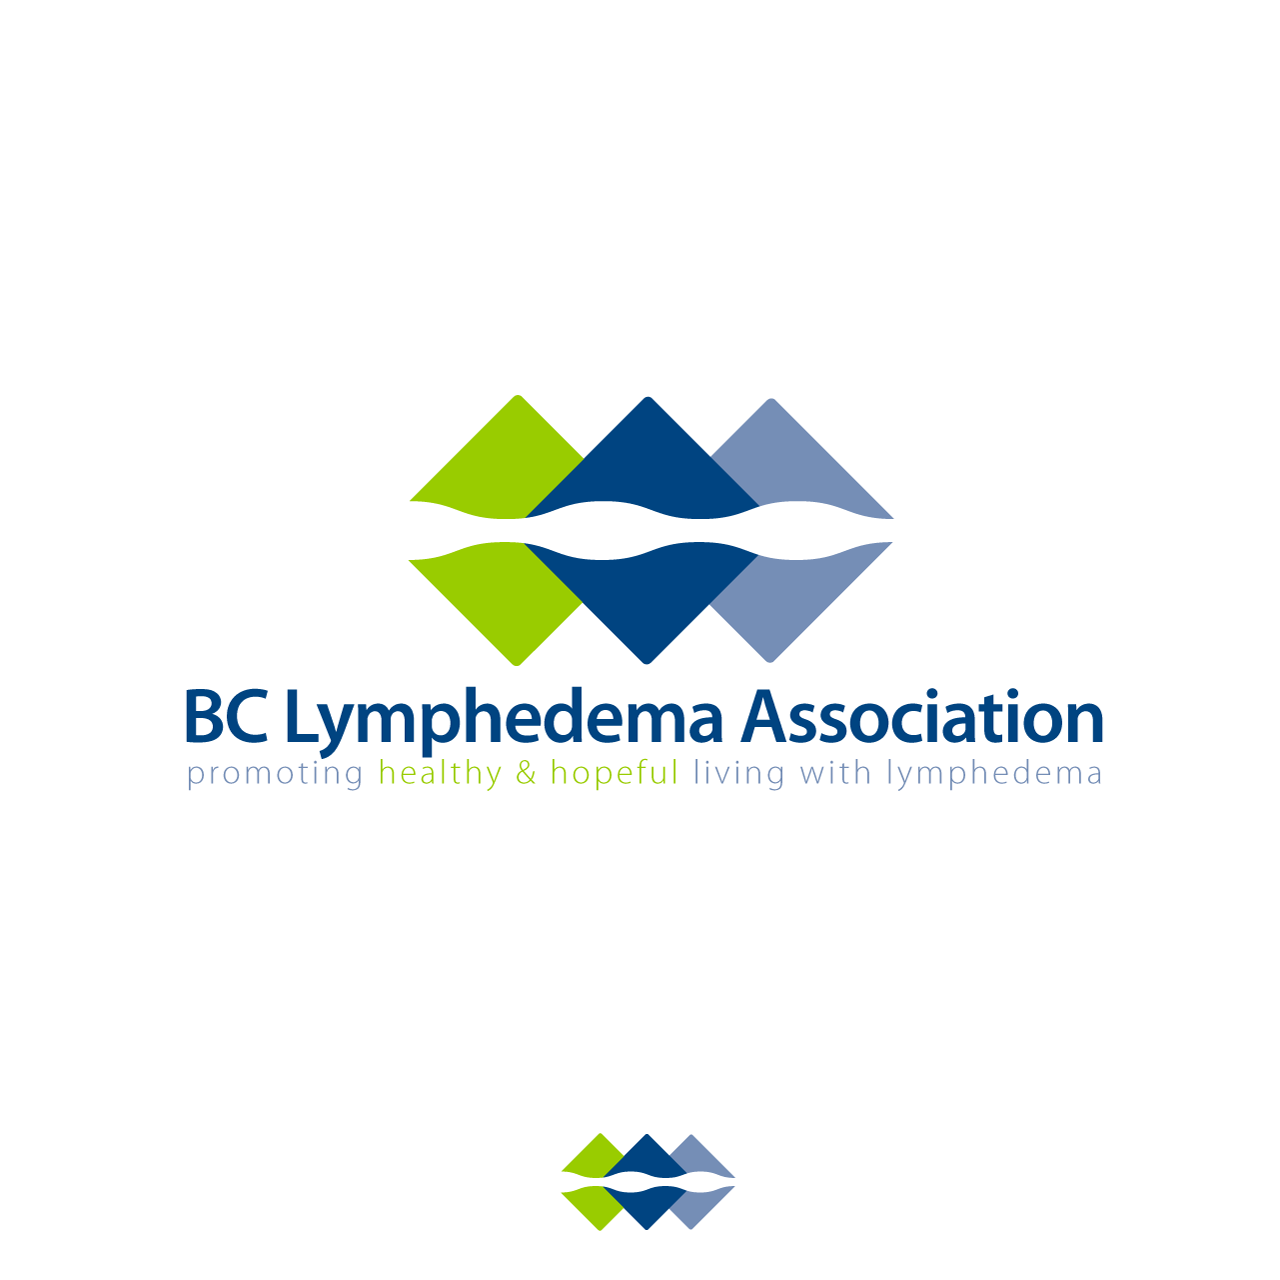 Logo Design by umxca - Entry No. 177 in the Logo Design Contest BC Lymphedema Association.